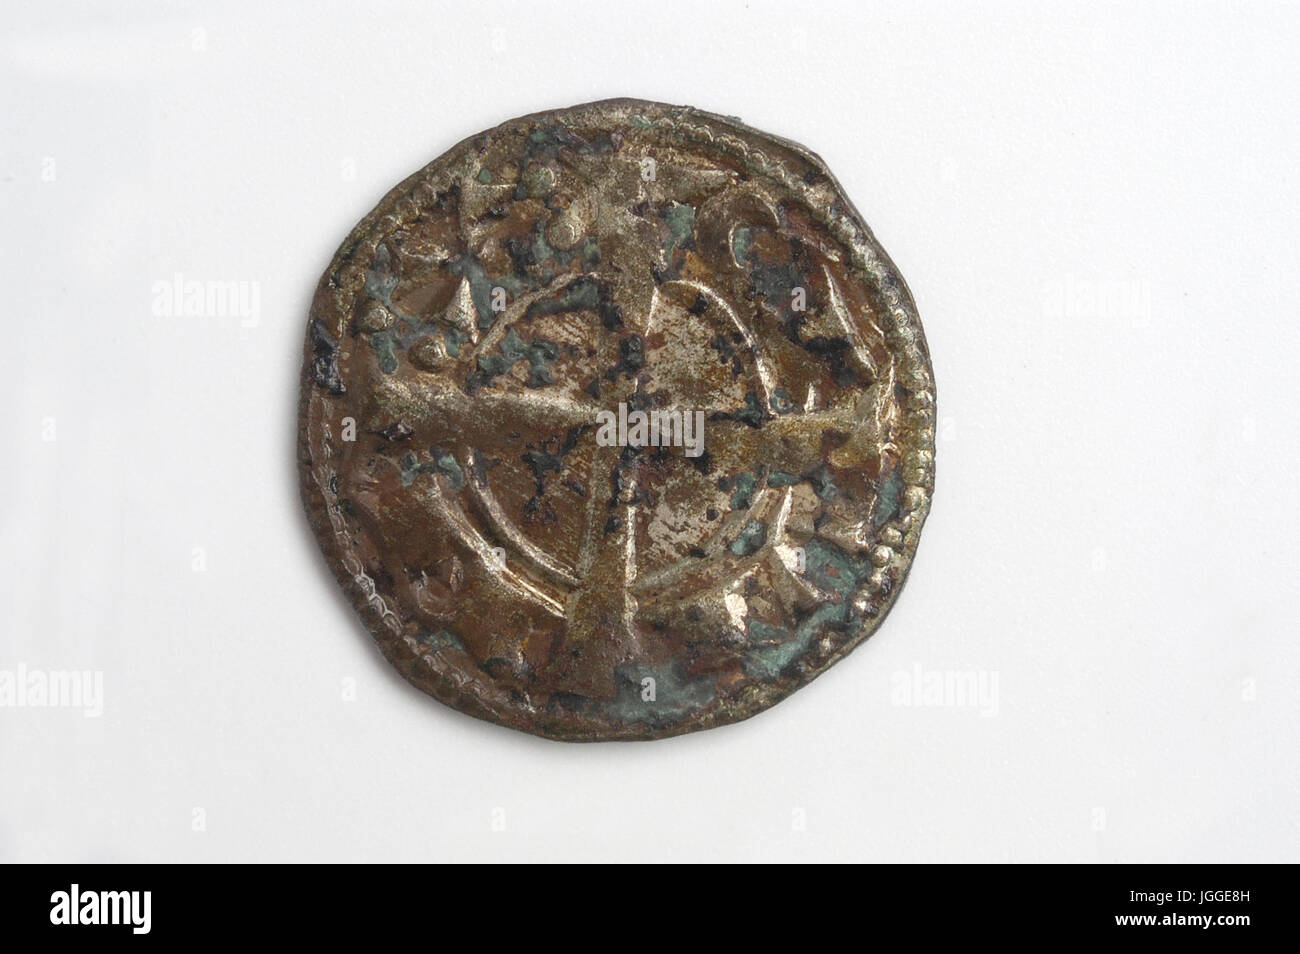 Medival Coin of Spain, Alfonso I, dinero - Stock Image